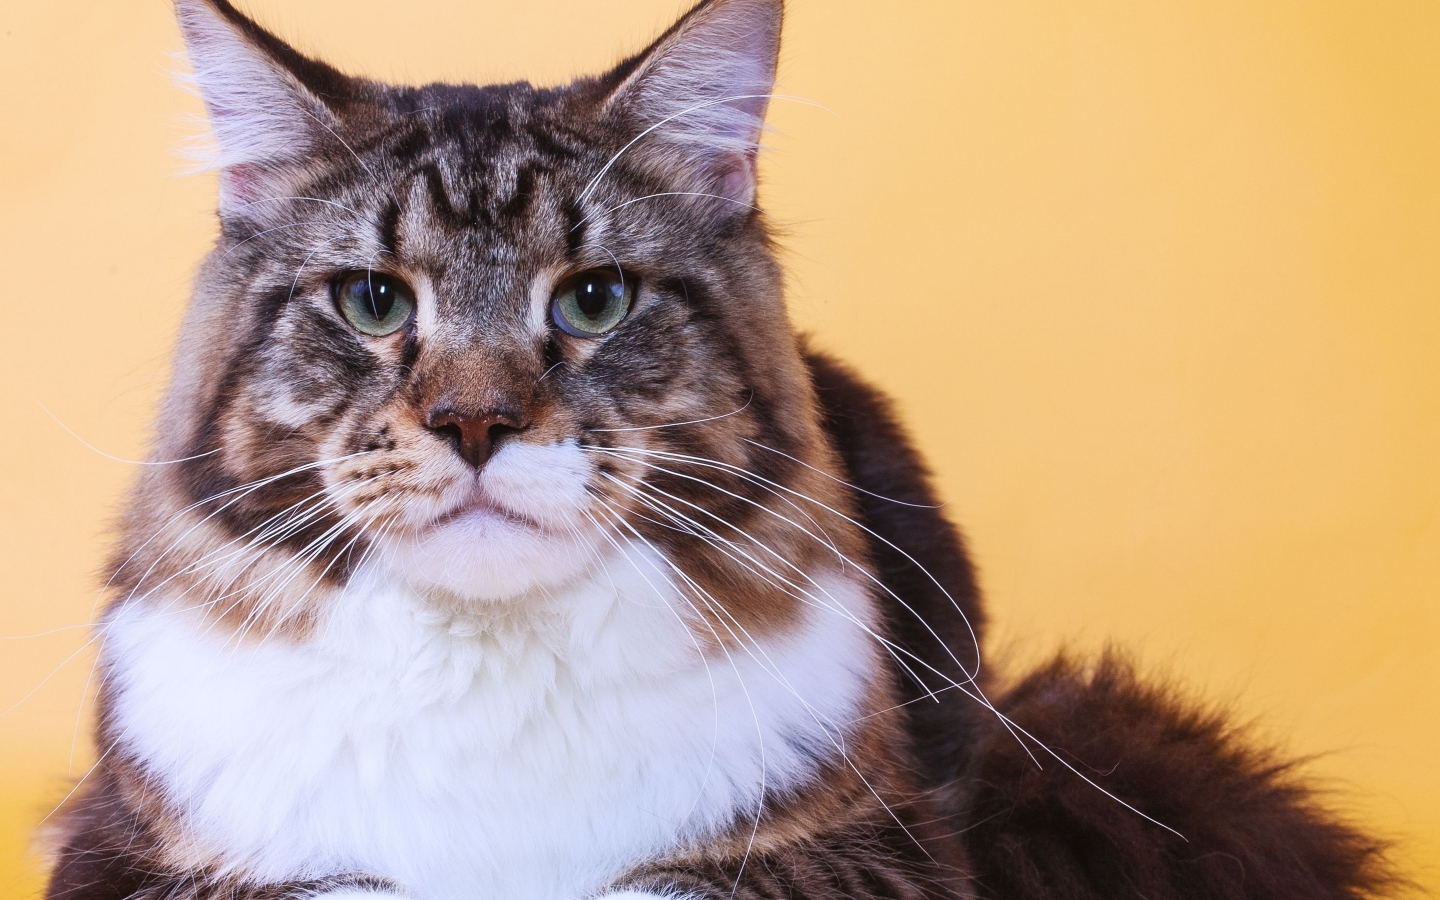 Maine Coon Cat Close Up for 1440 x 900 widescreen resolution